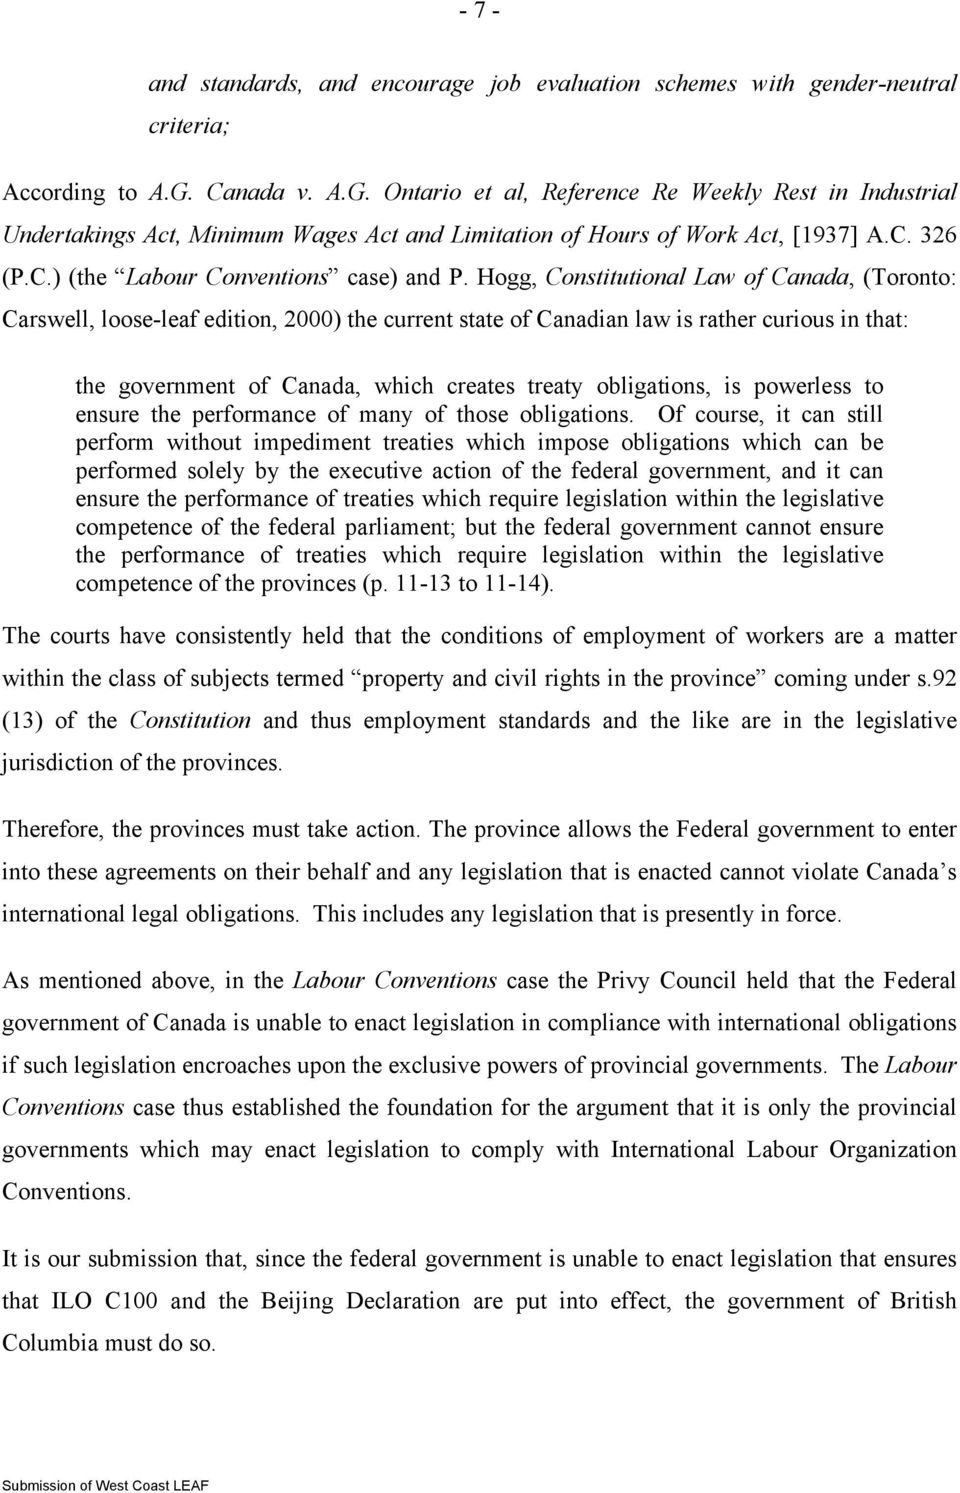 Hogg, Constitutional Law of Canada, (Toronto: Carswell, loose-leaf edition, 2000) the current state of Canadian law is rather curious in that: the government of Canada, which creates treaty